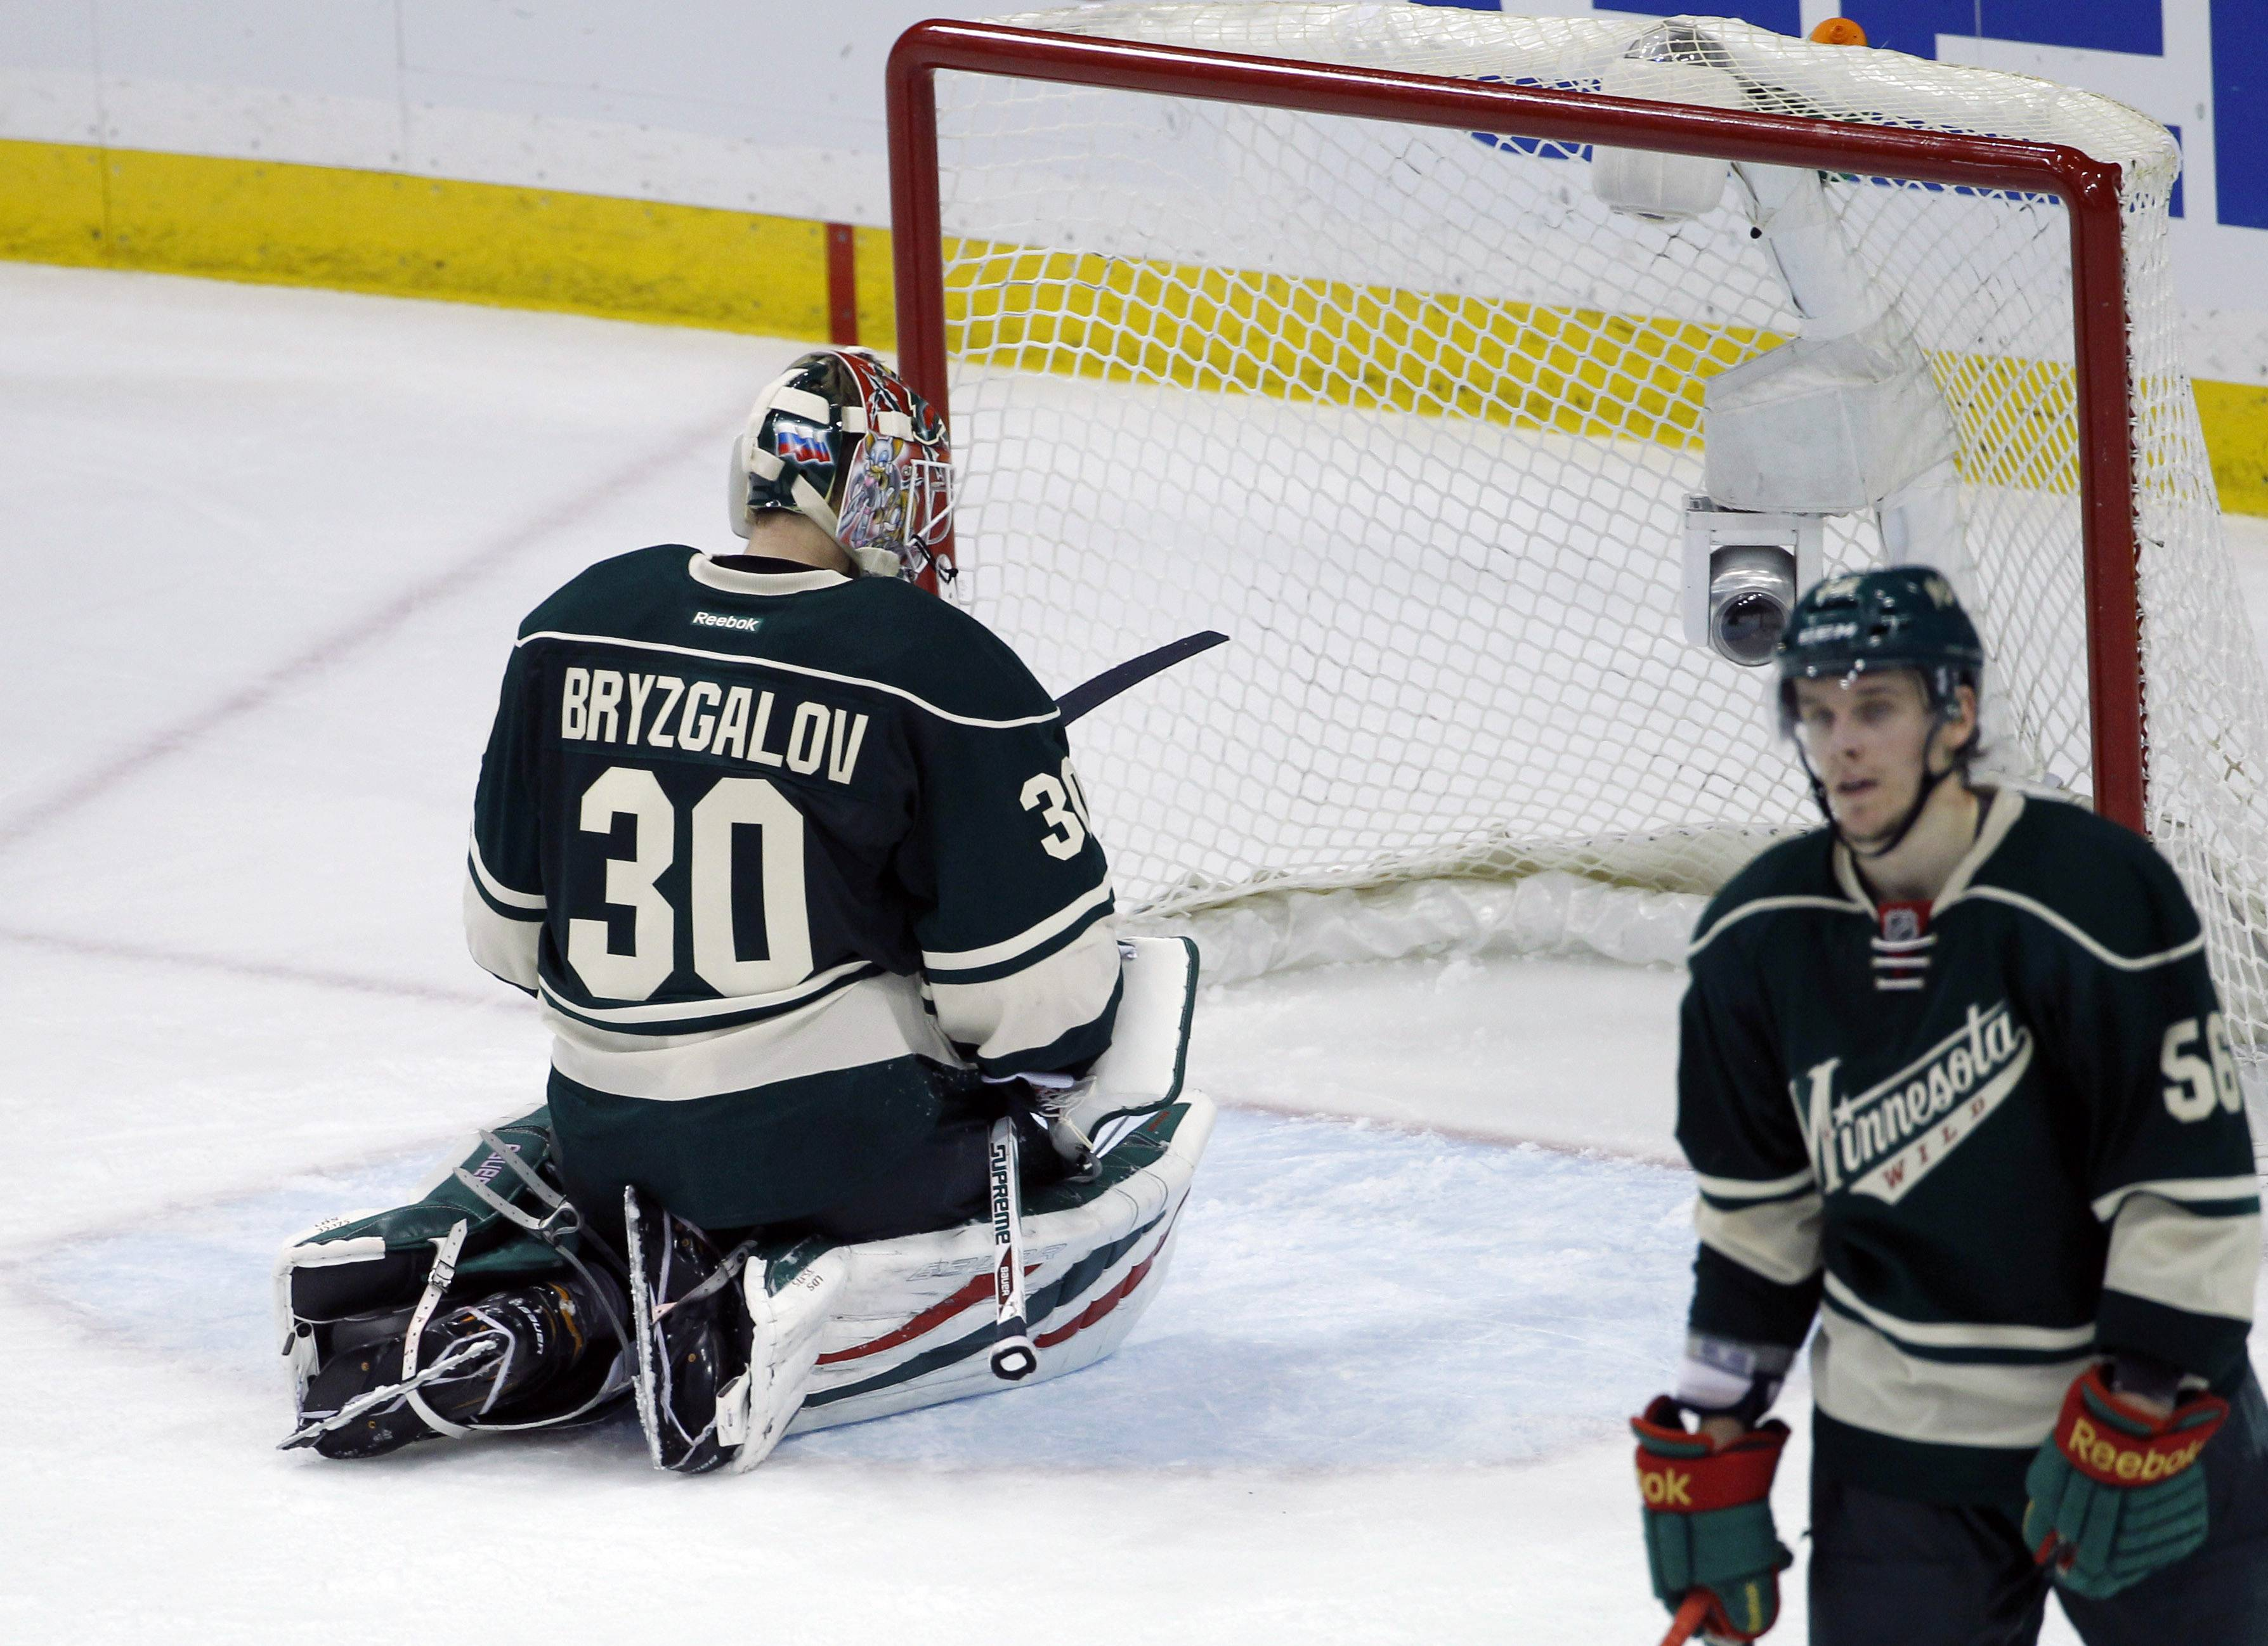 Minnesota Wild goalie Ilya Bryzgalov (30), of Russia, kneels in front of the net after Chicago Blackhawks right wing Patrick Kane scored the game-winning goal on him during overtime.